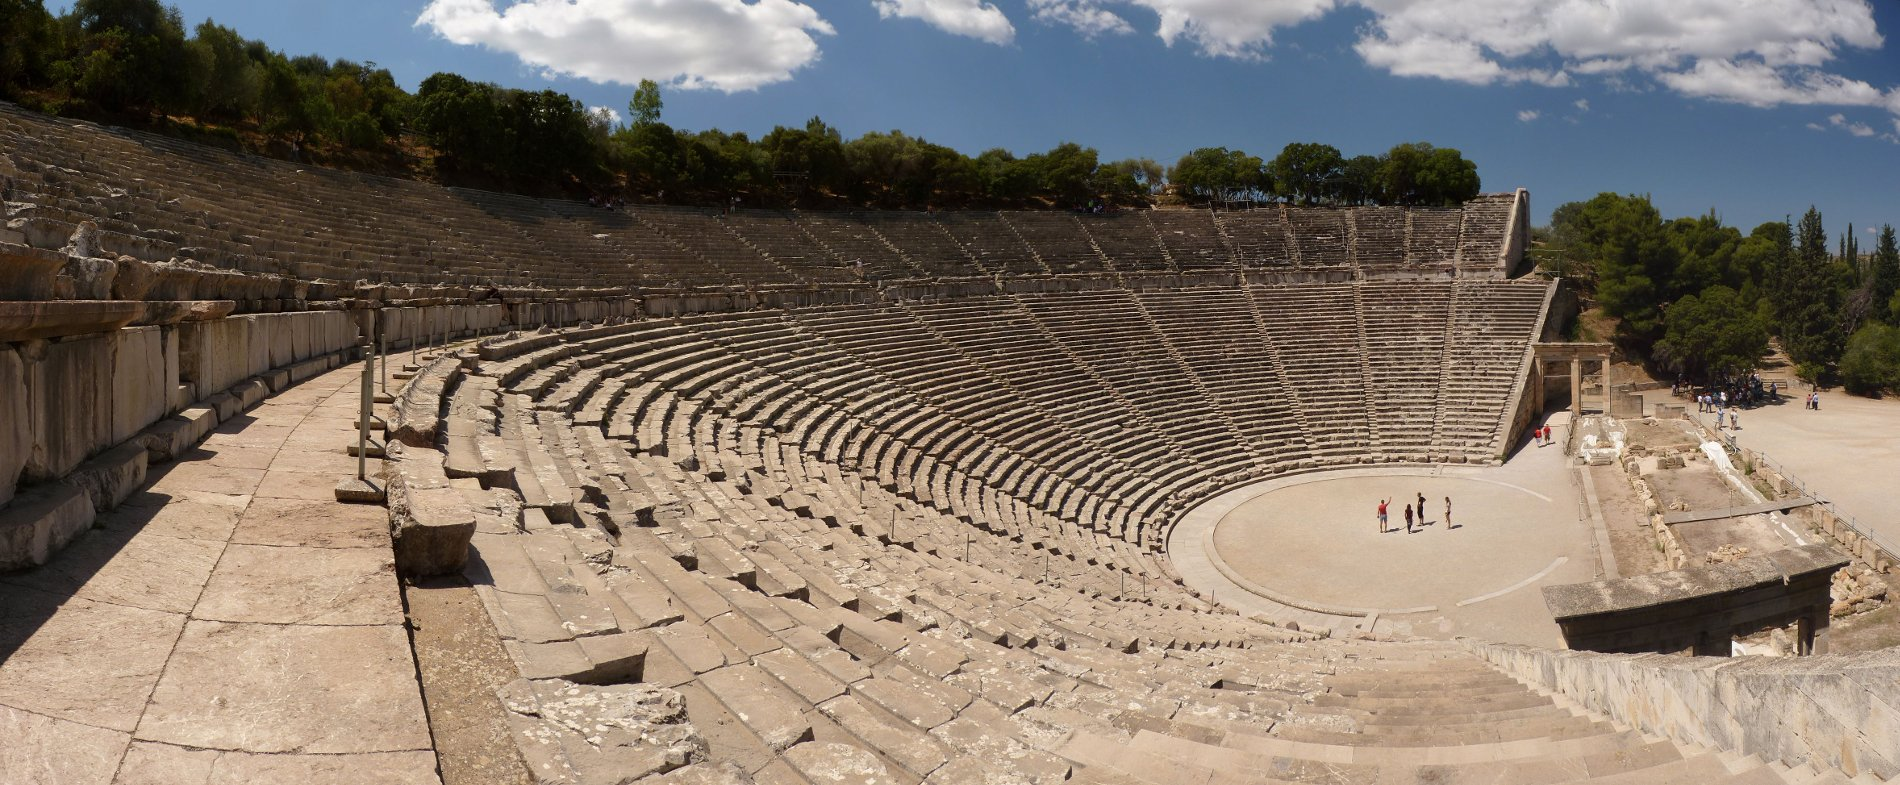 The ancient theater of Epidaurus. Source:  Wikimedia